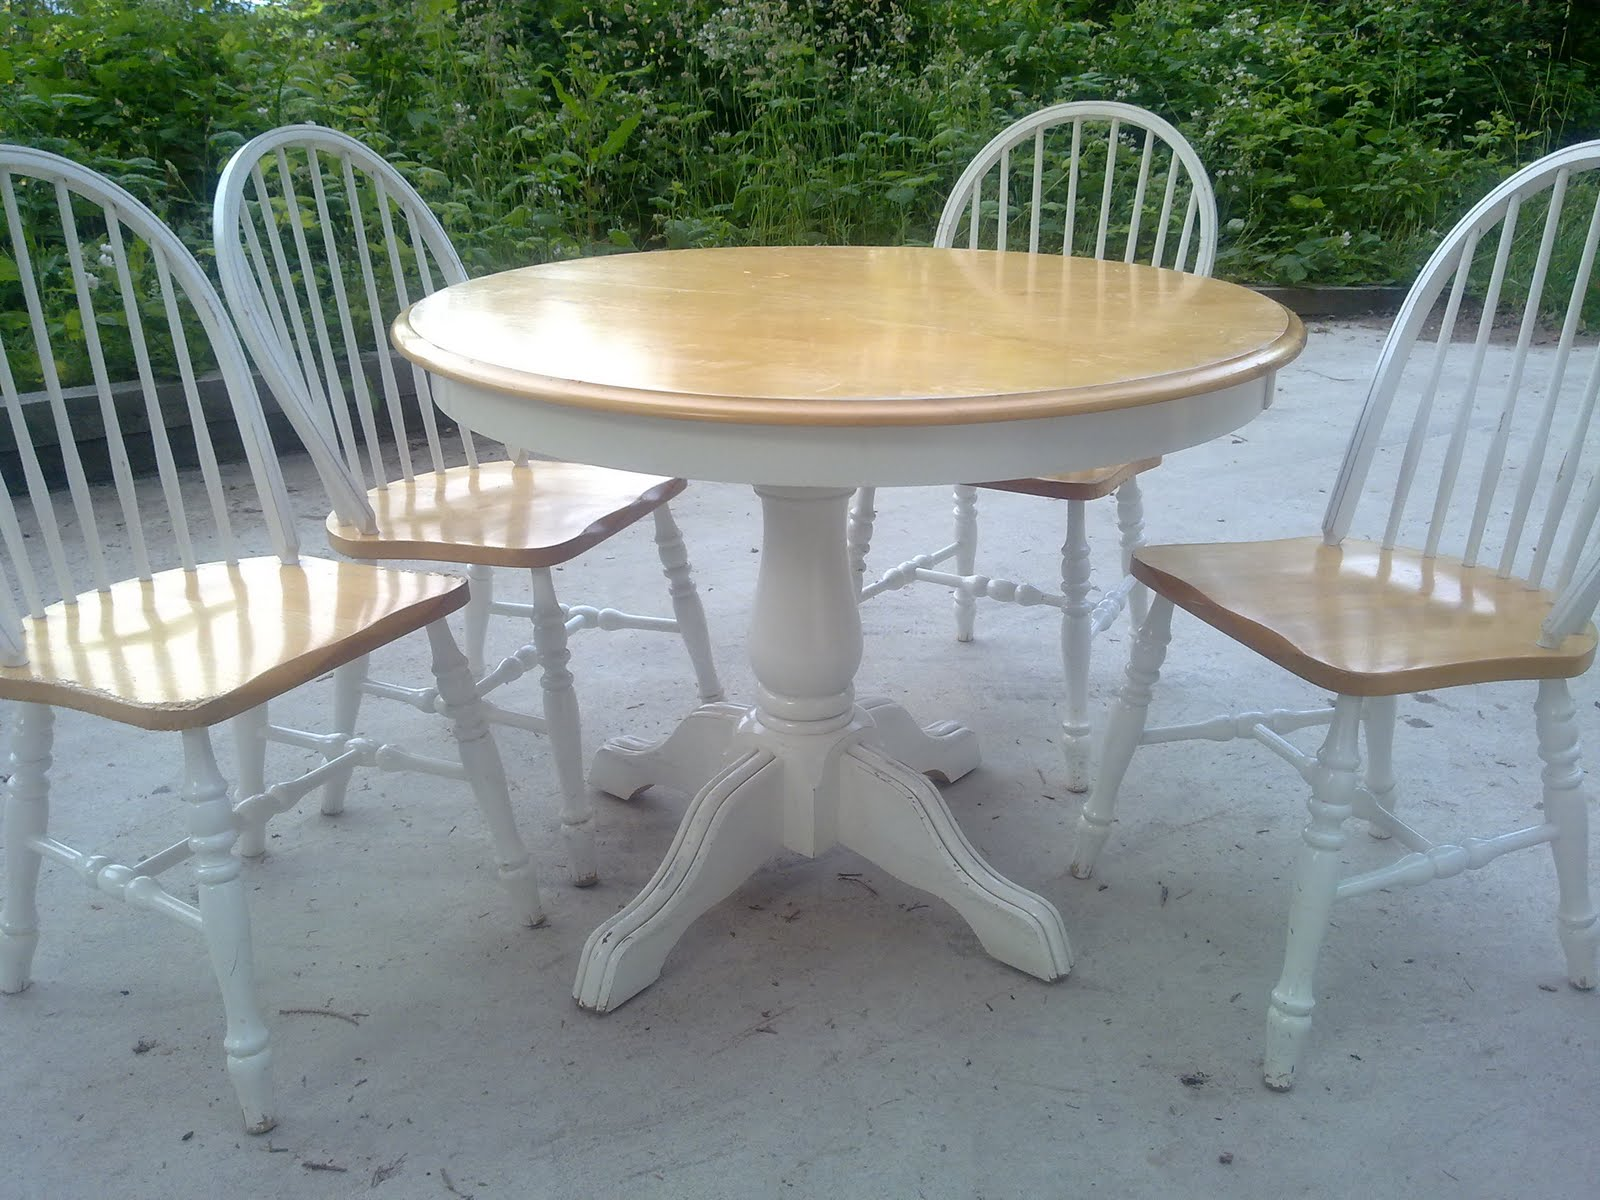 Wonderful Shabby Chic Dining Table 1600 x 1200 · 250 kB · jpeg